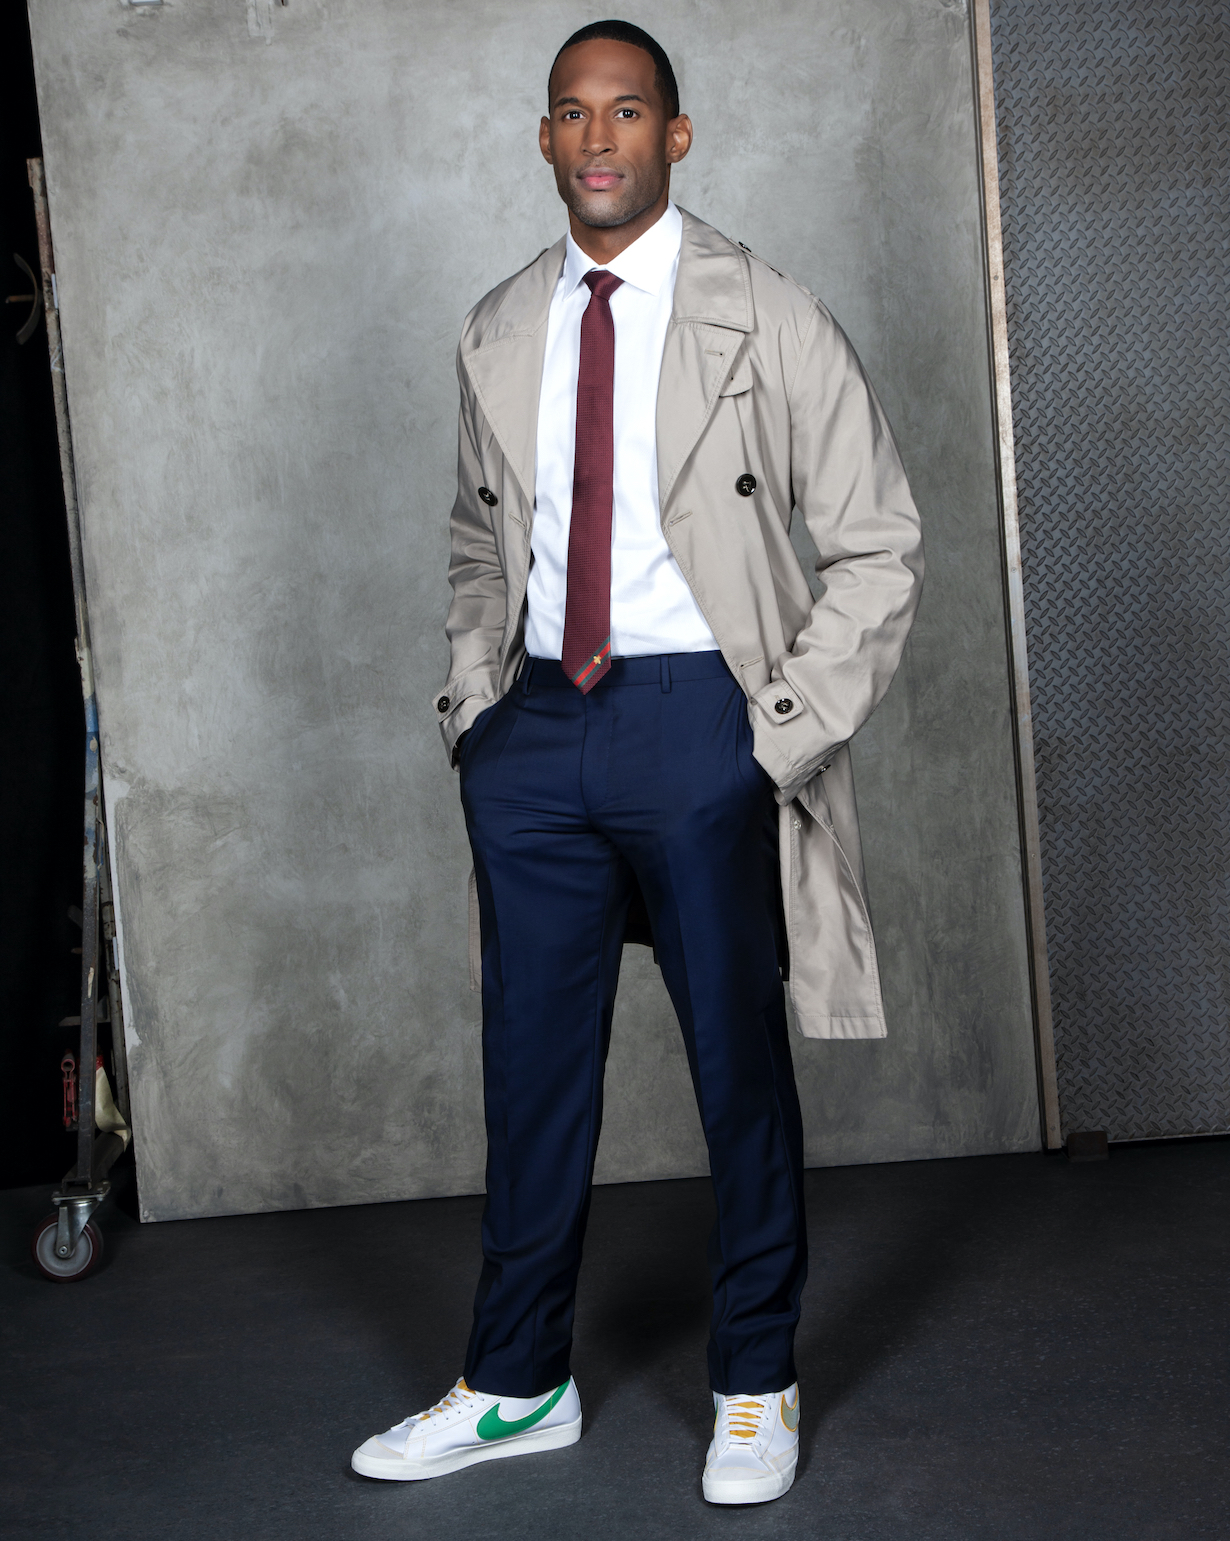 Lawrence Saint Victor of the CBS series THE BOLD AND THE BEAUTIFUL, Weekdays (1:30-2:00 PM, ET; 12:30-1:00 PM, PT) on the CBS Television Network. Photo: Gilles Toucas/CBS 2020 CBS Broadcasting, Inc. All Rights Reserved.